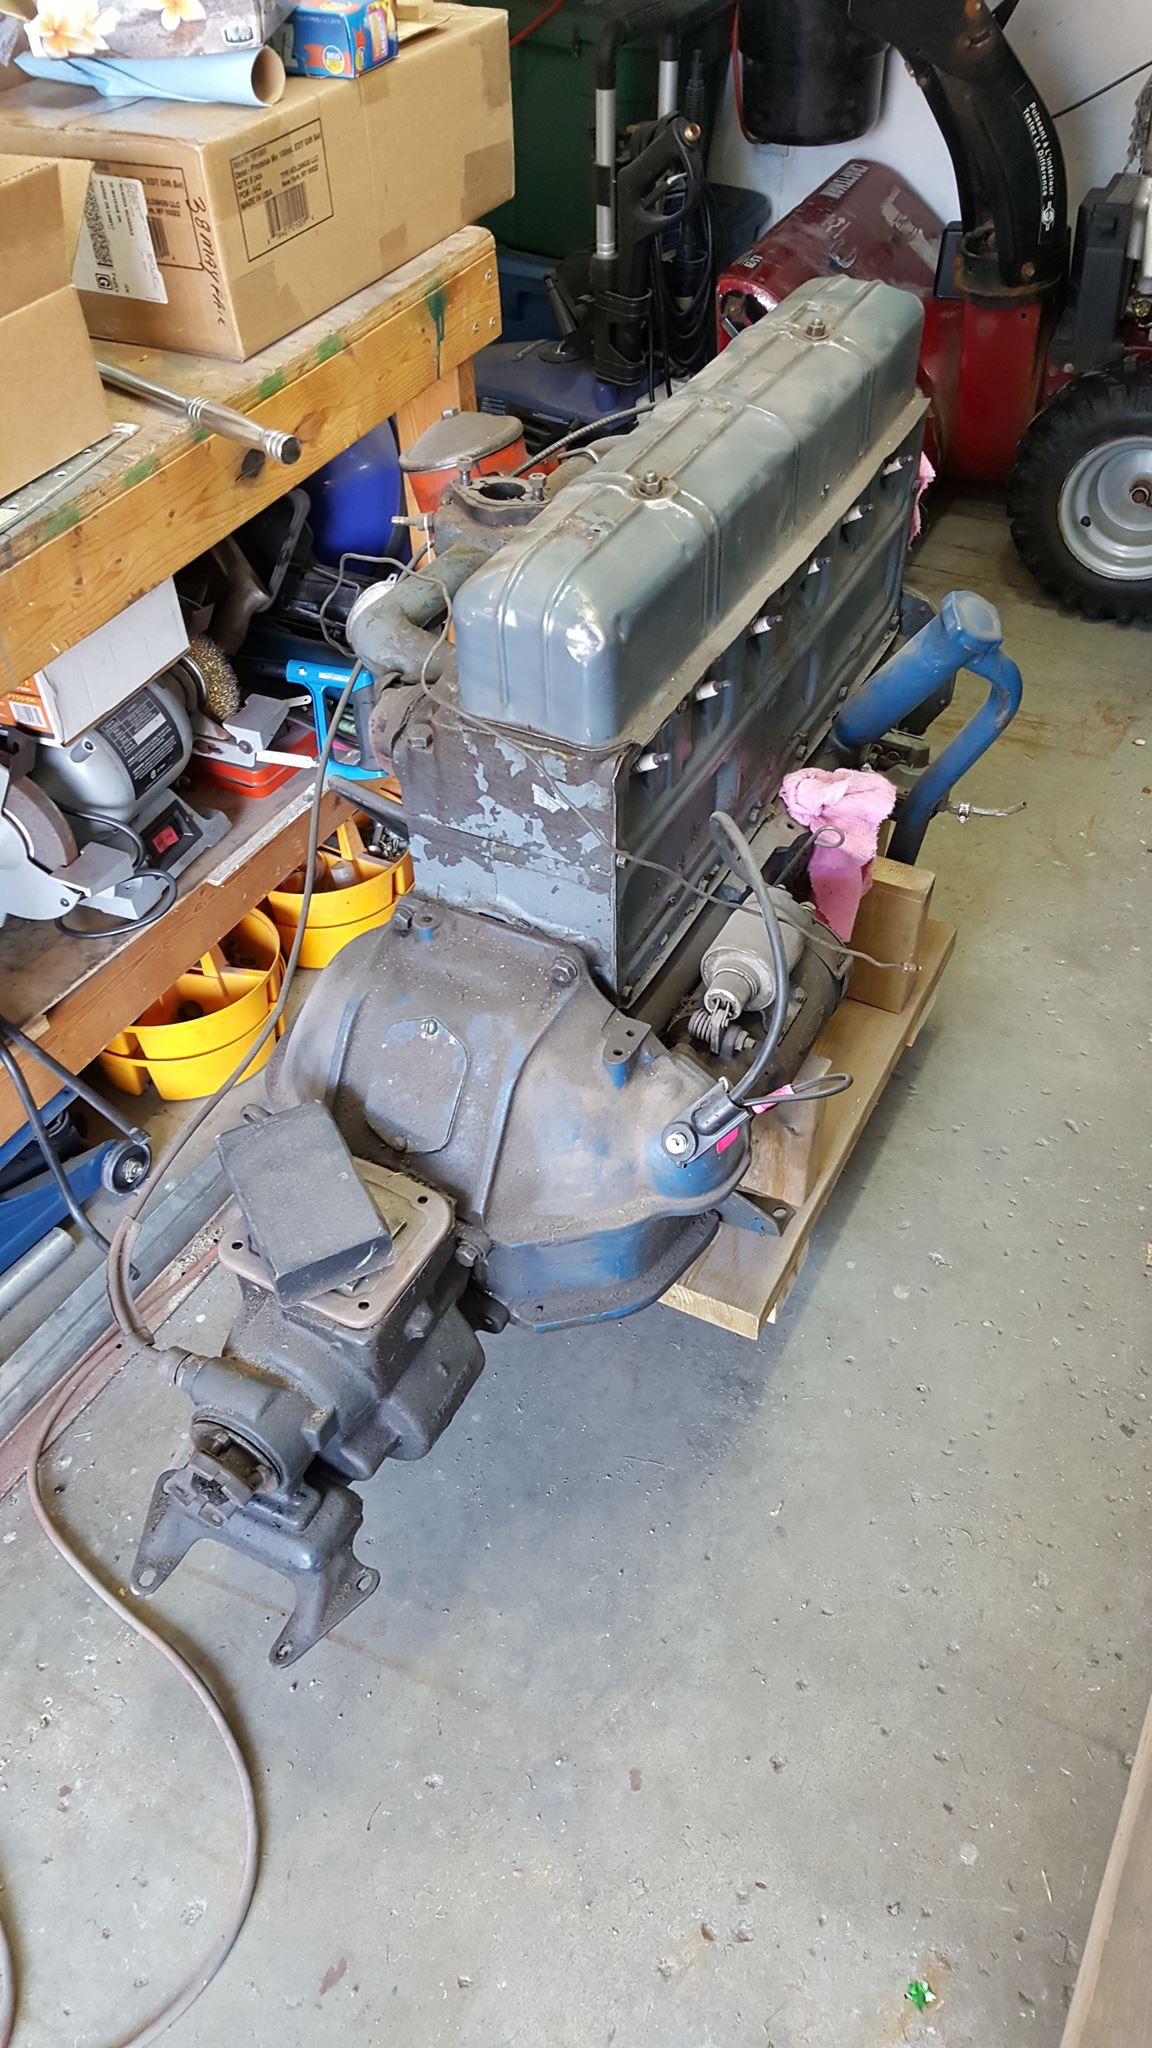 straight 6 gm 235 chevy '54 engine help - technical - antique automobile  club of america - discussion forums  aaca forums - antique automobile club of america